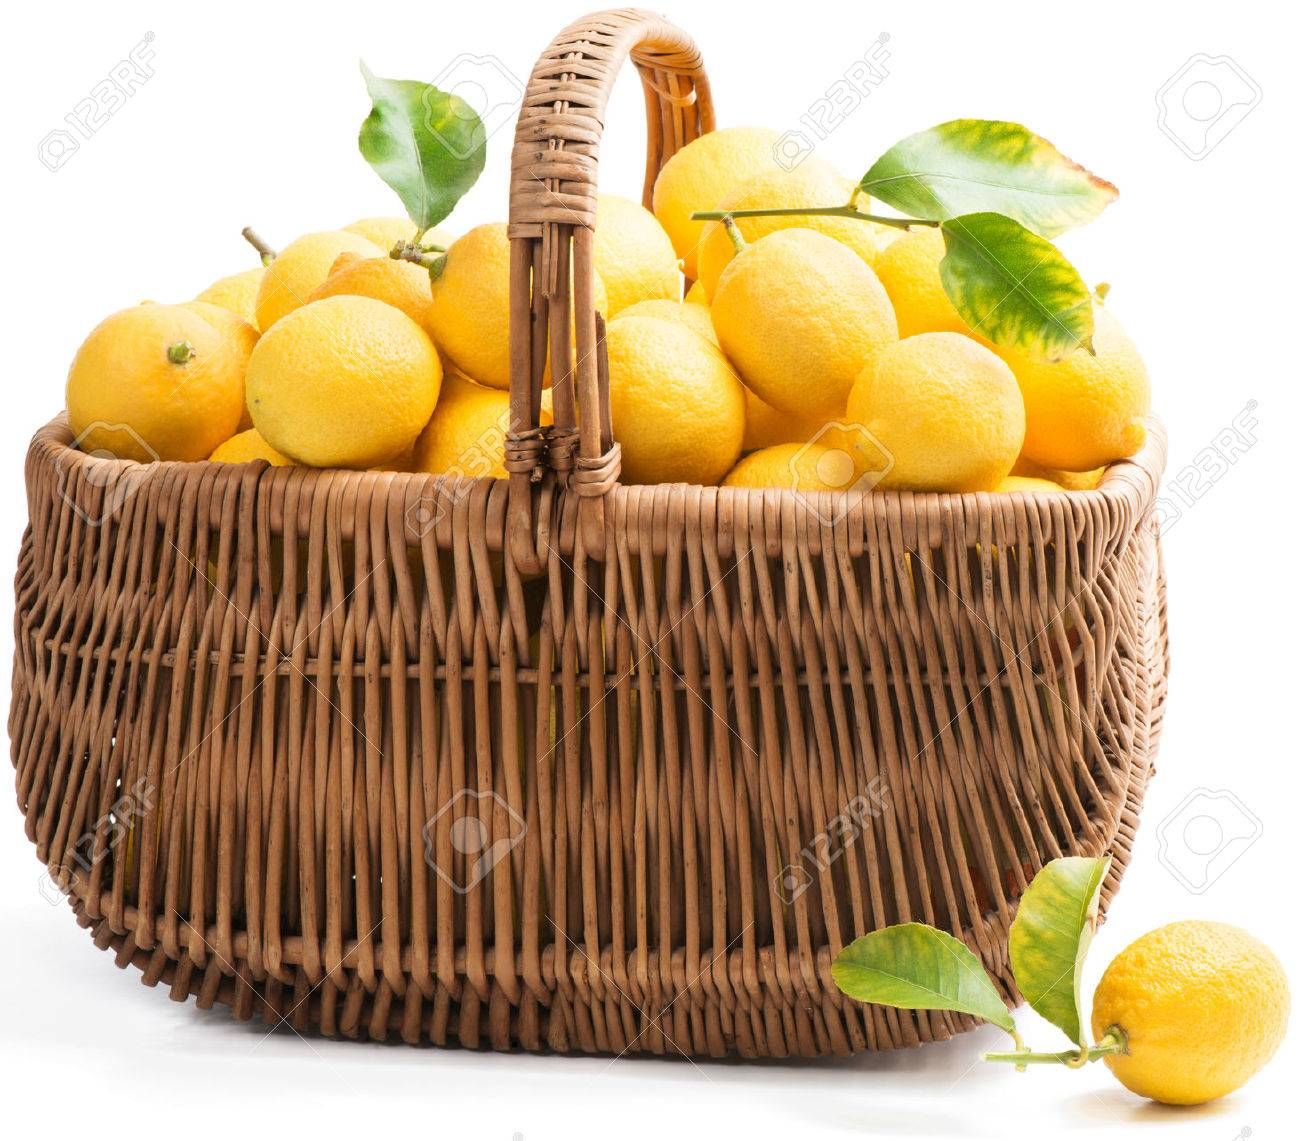 White wicker baskets with handle - A Wicker Basket With A Handle Full Of Fresh Lemons Isolated On A White Background